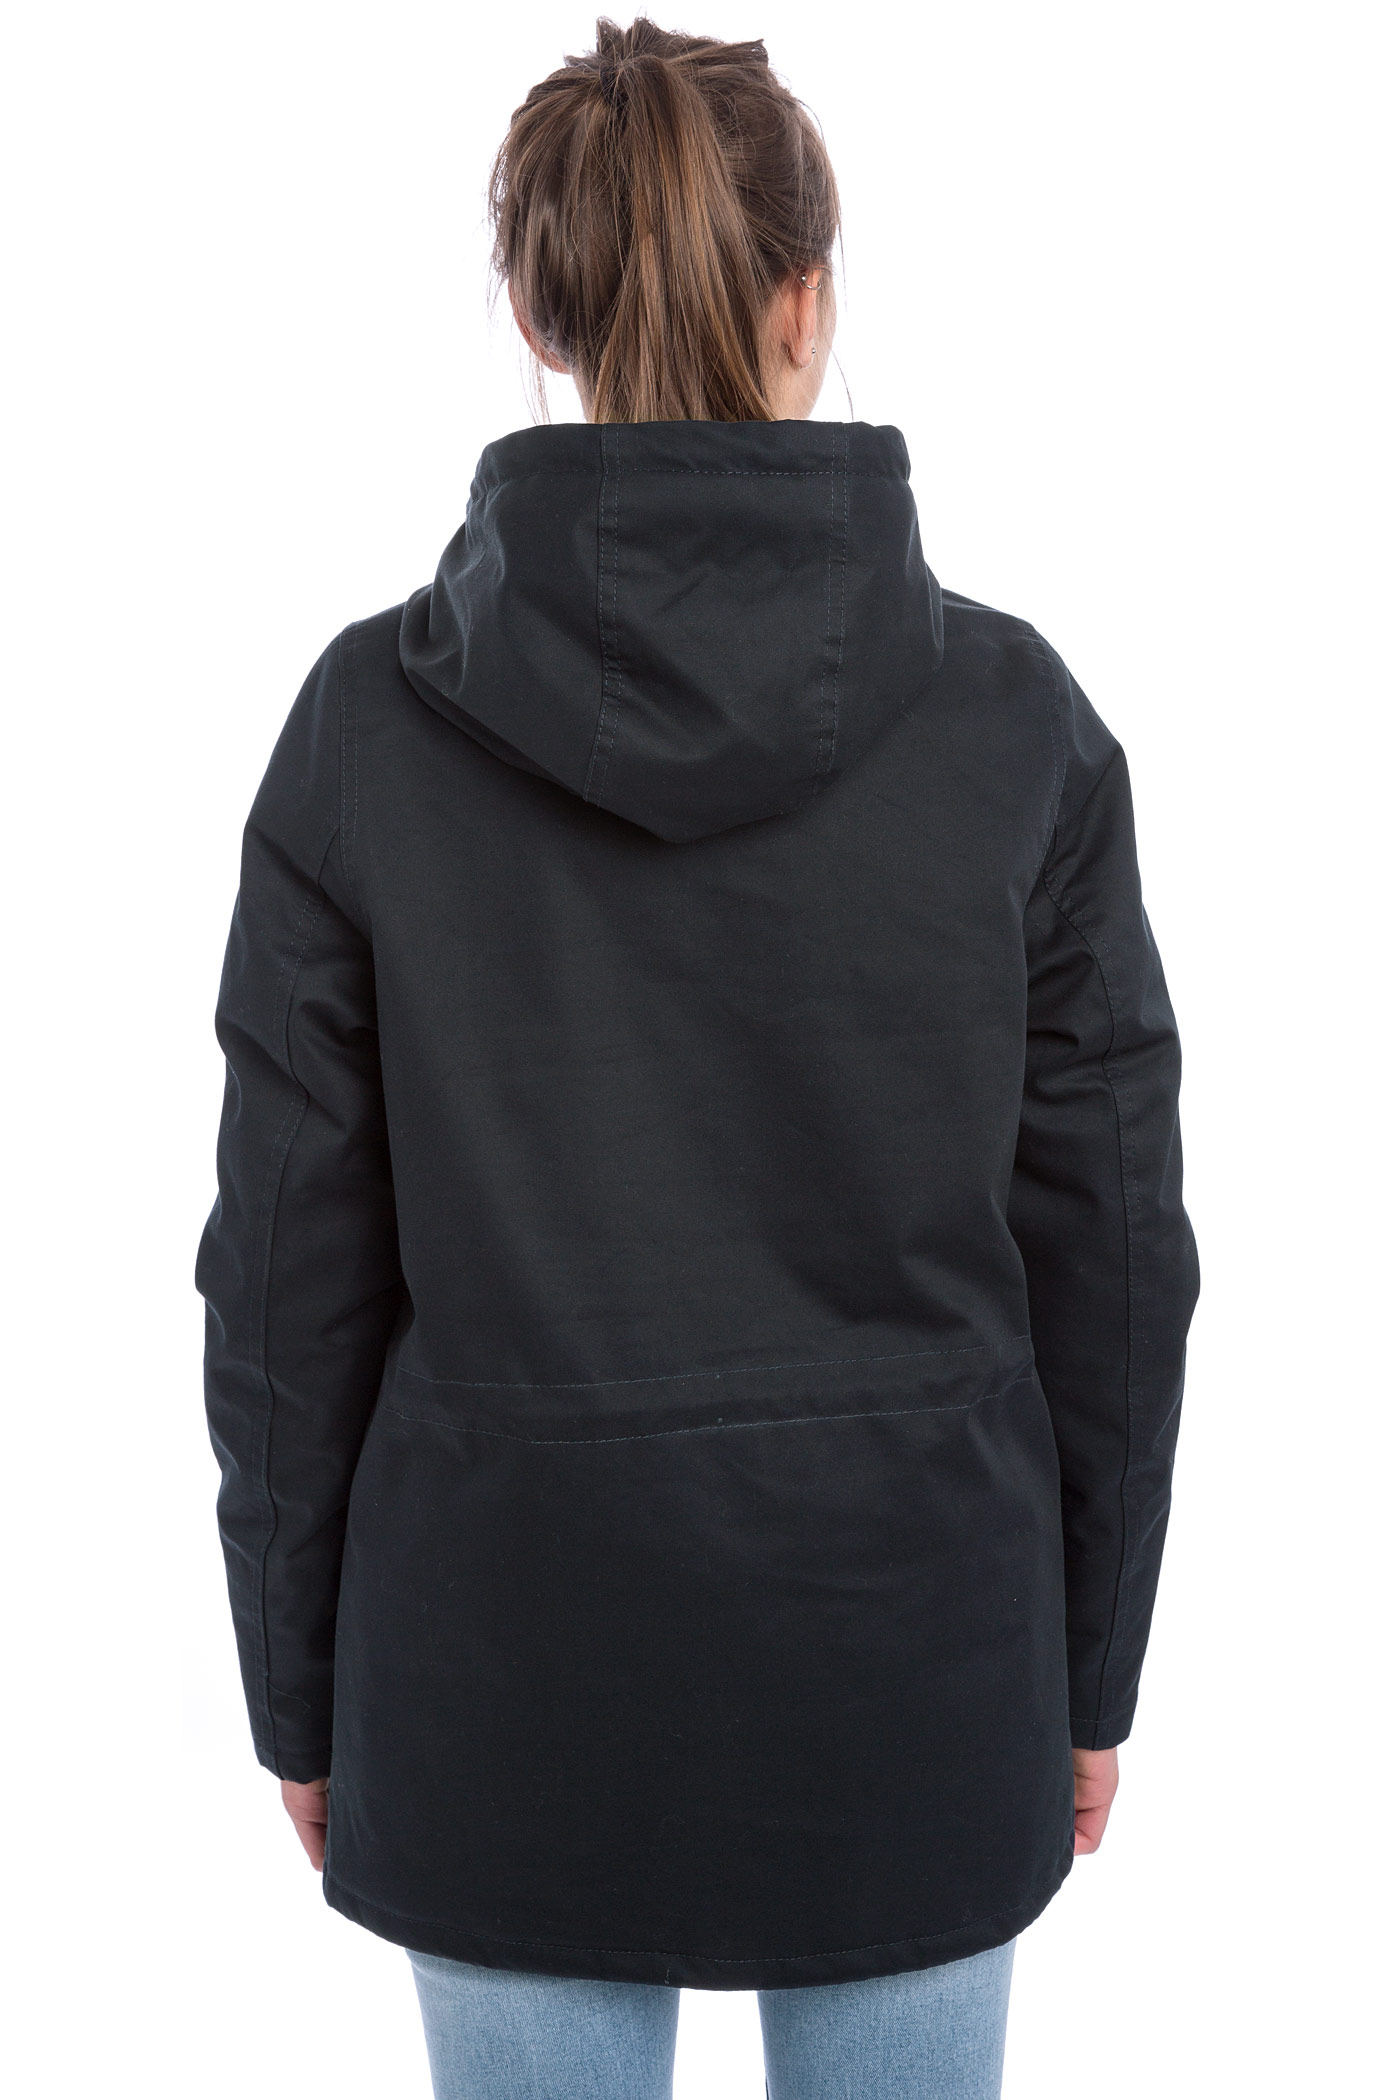 Wemoto Ella Parka Jacket women (dark navy) buy at skatedeluxe